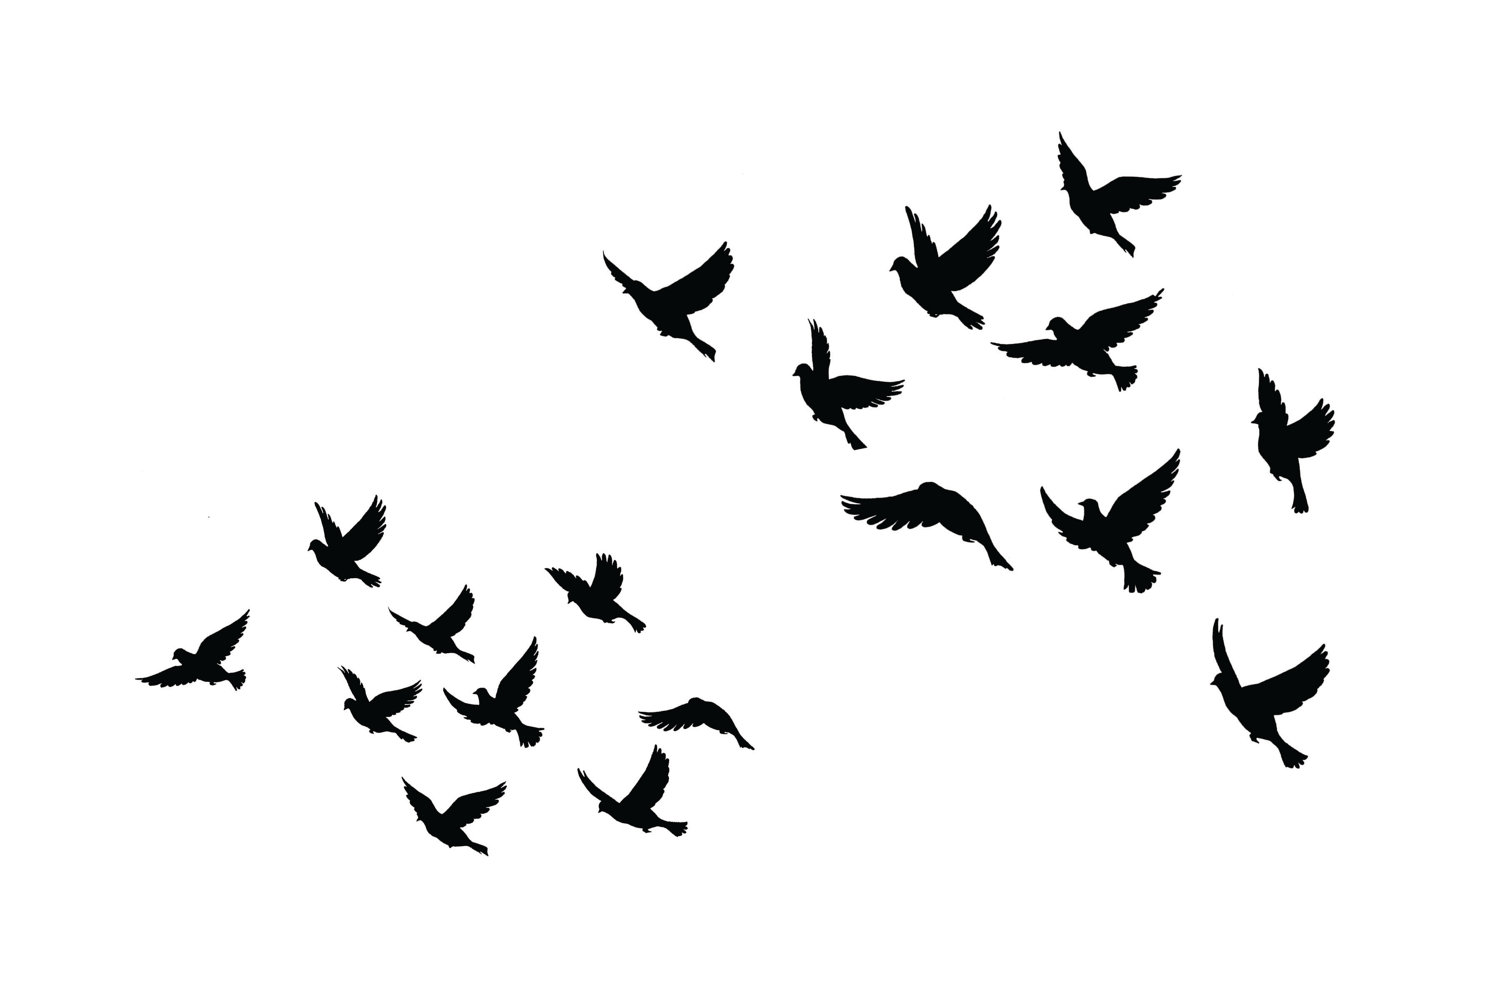 Bird Silhouette Tattoos At Getdrawings Com Free For Ideas And Designs